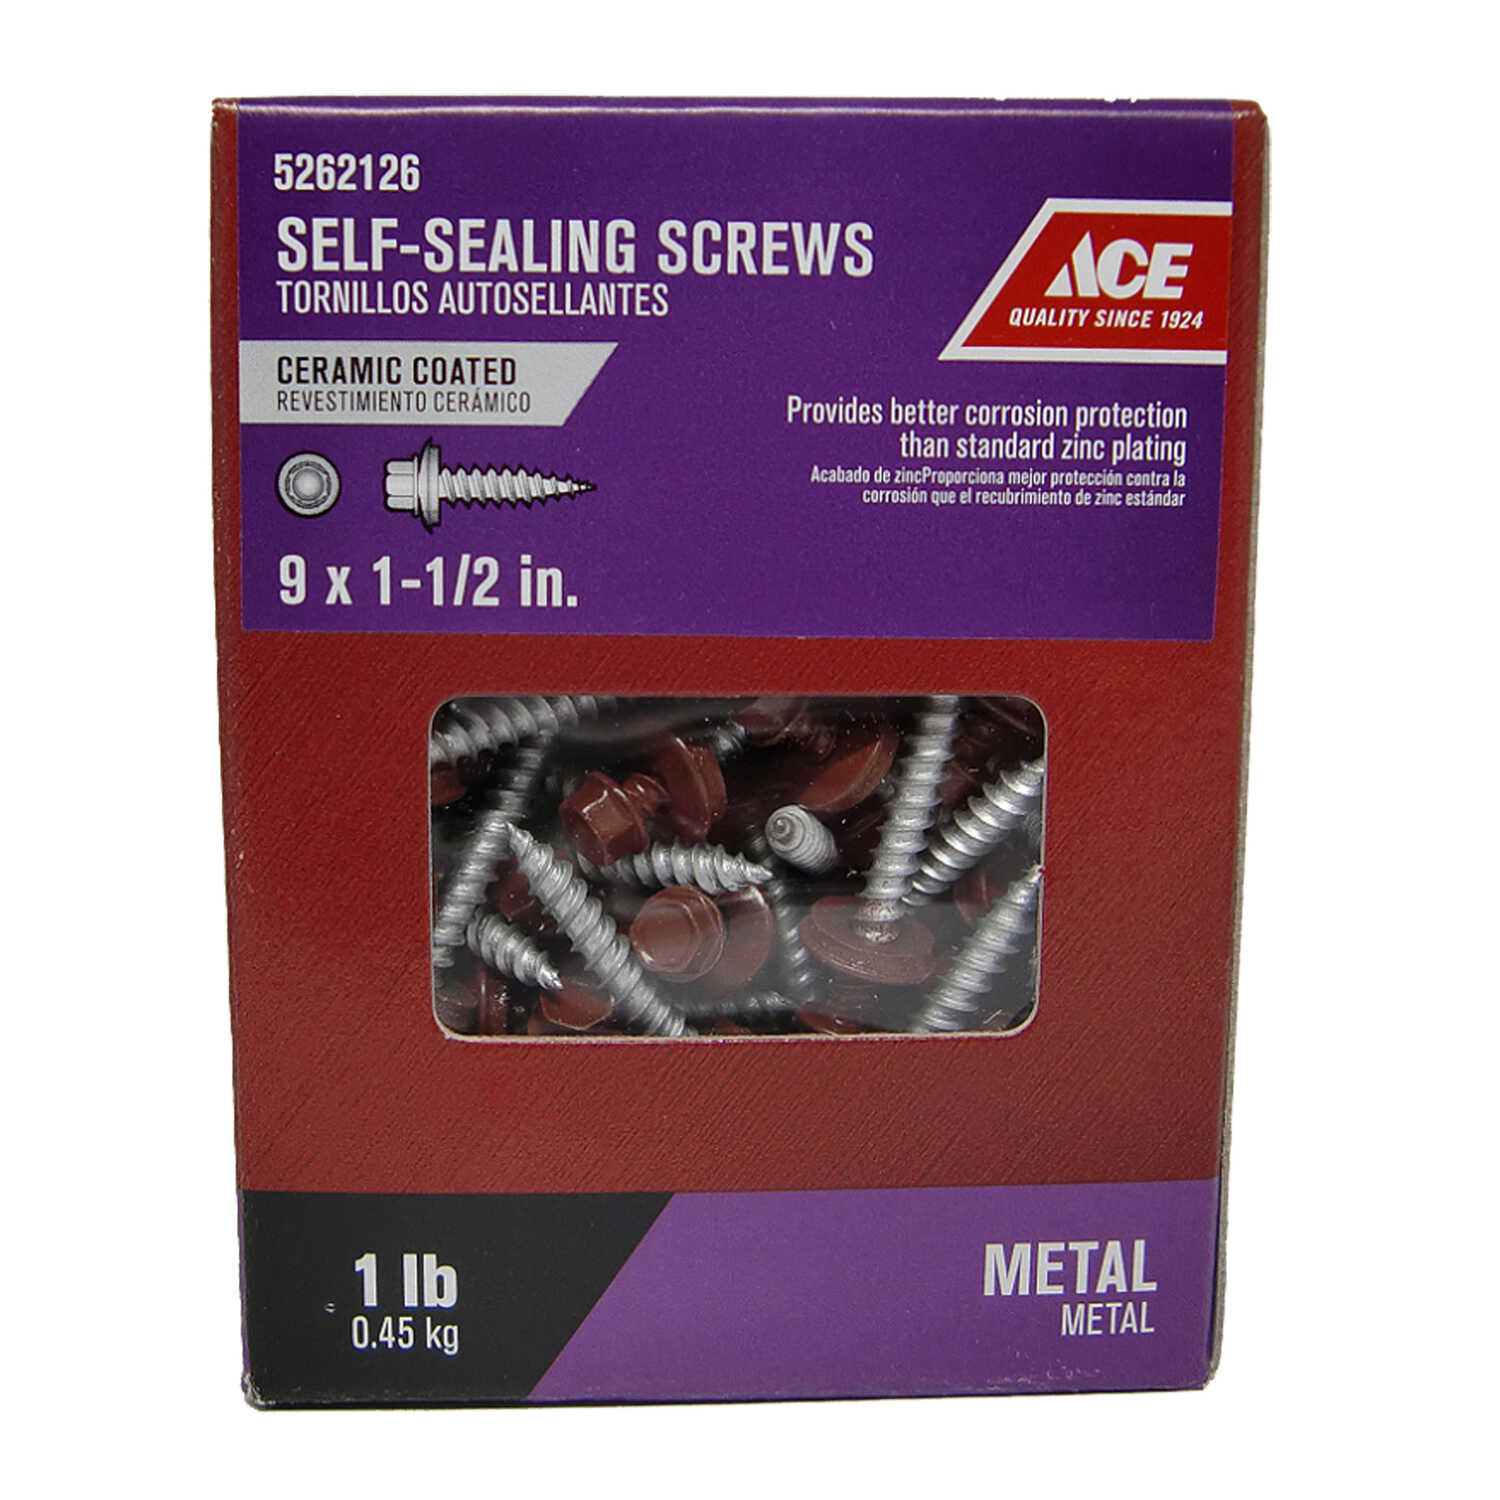 Ace  9 Sizes  x 1-1/2 in. L Steel  Ceramic  1 lb. Self-Sealing Screws  Hex Washer Head